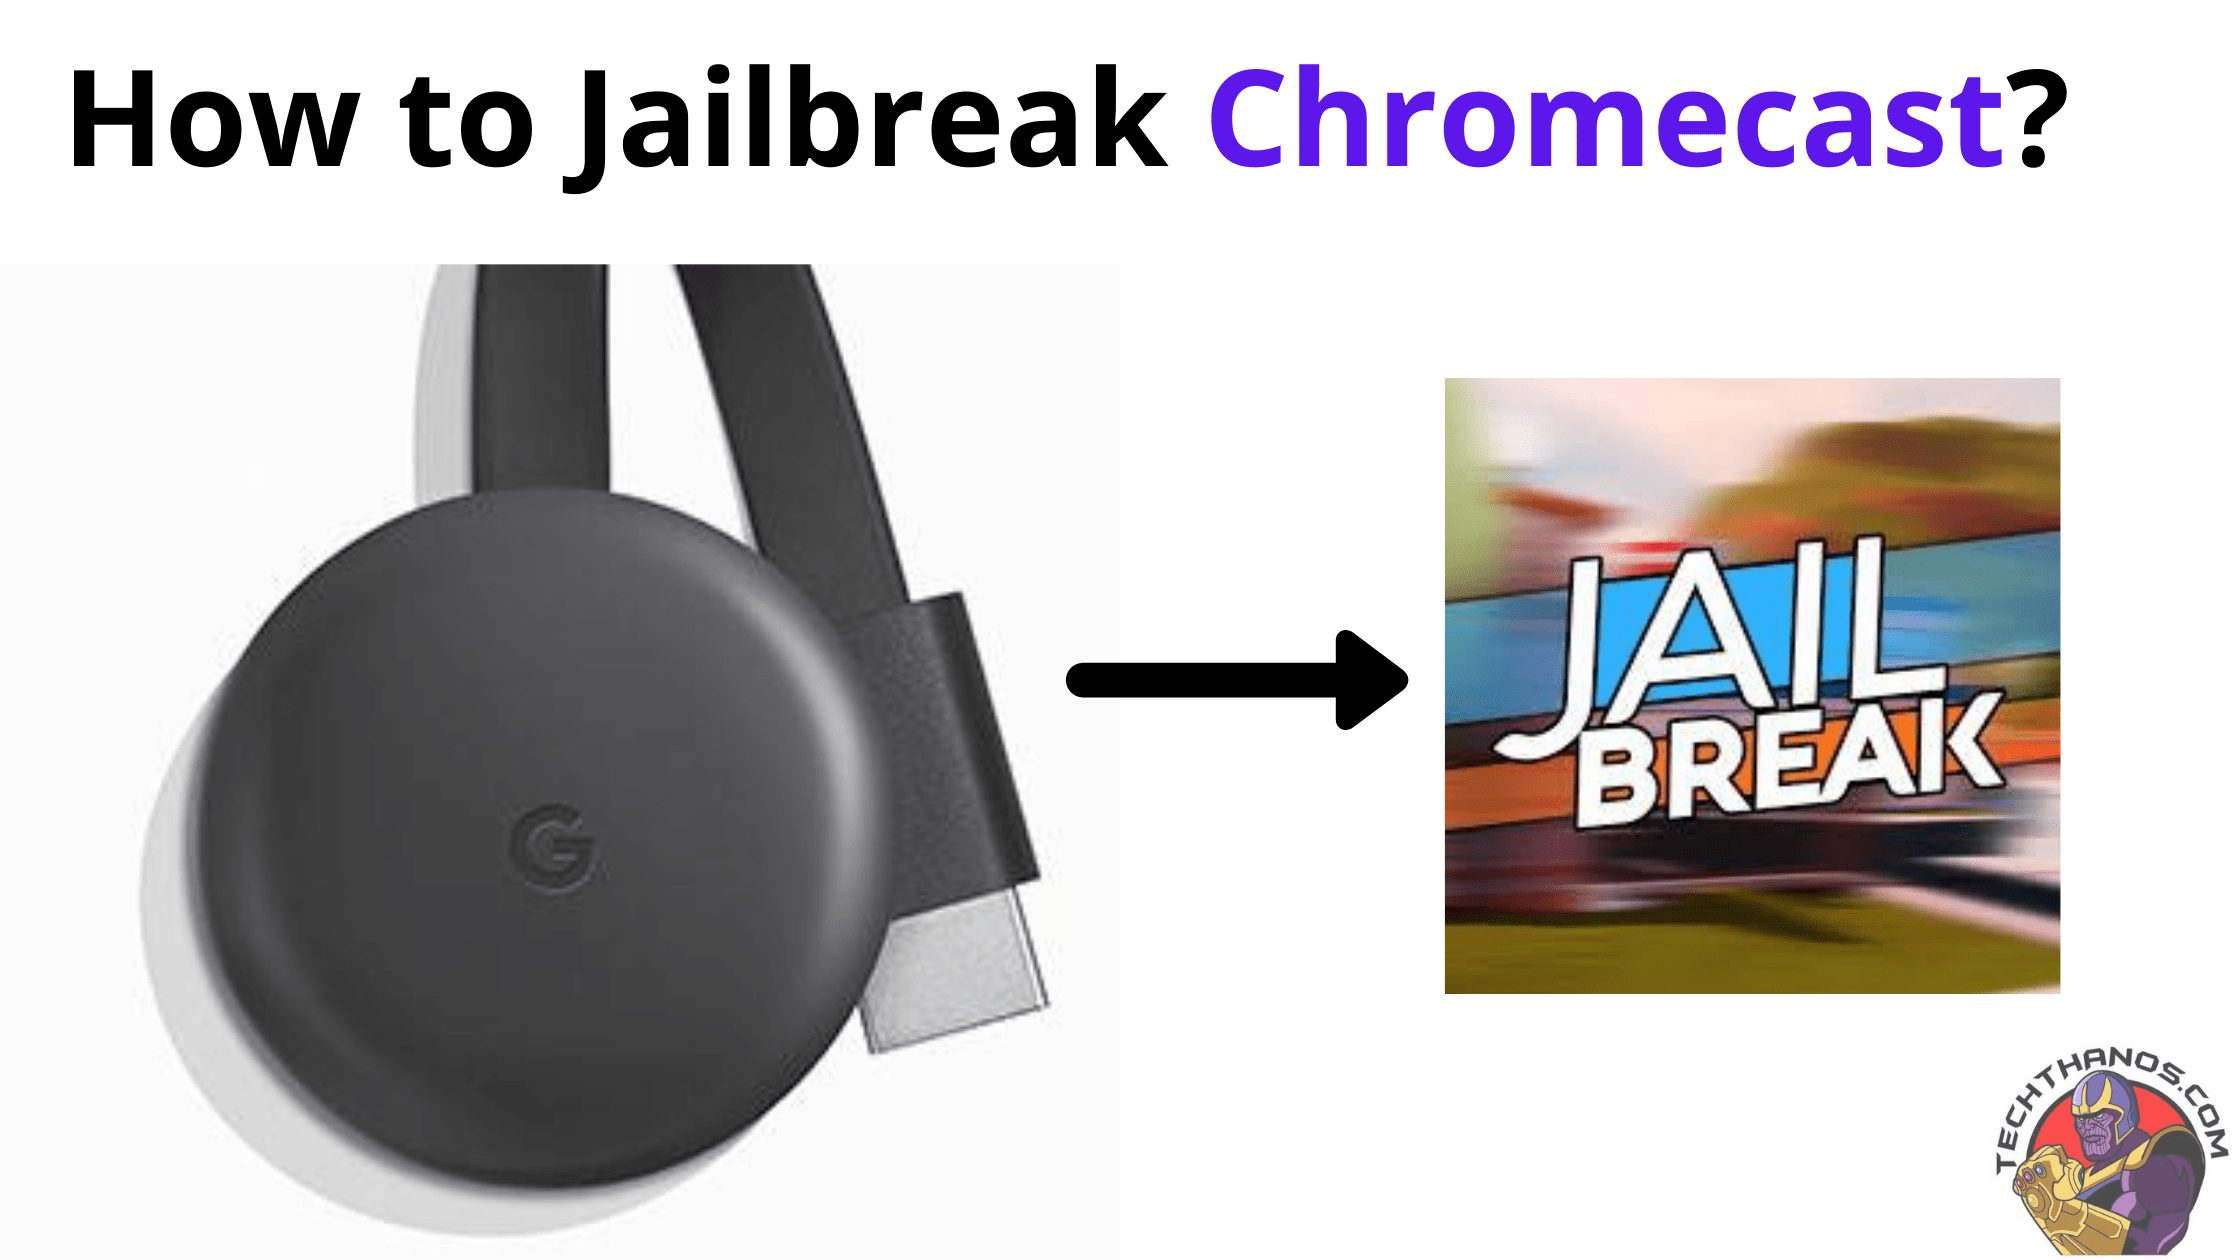 How to Jailbreak Chromecast